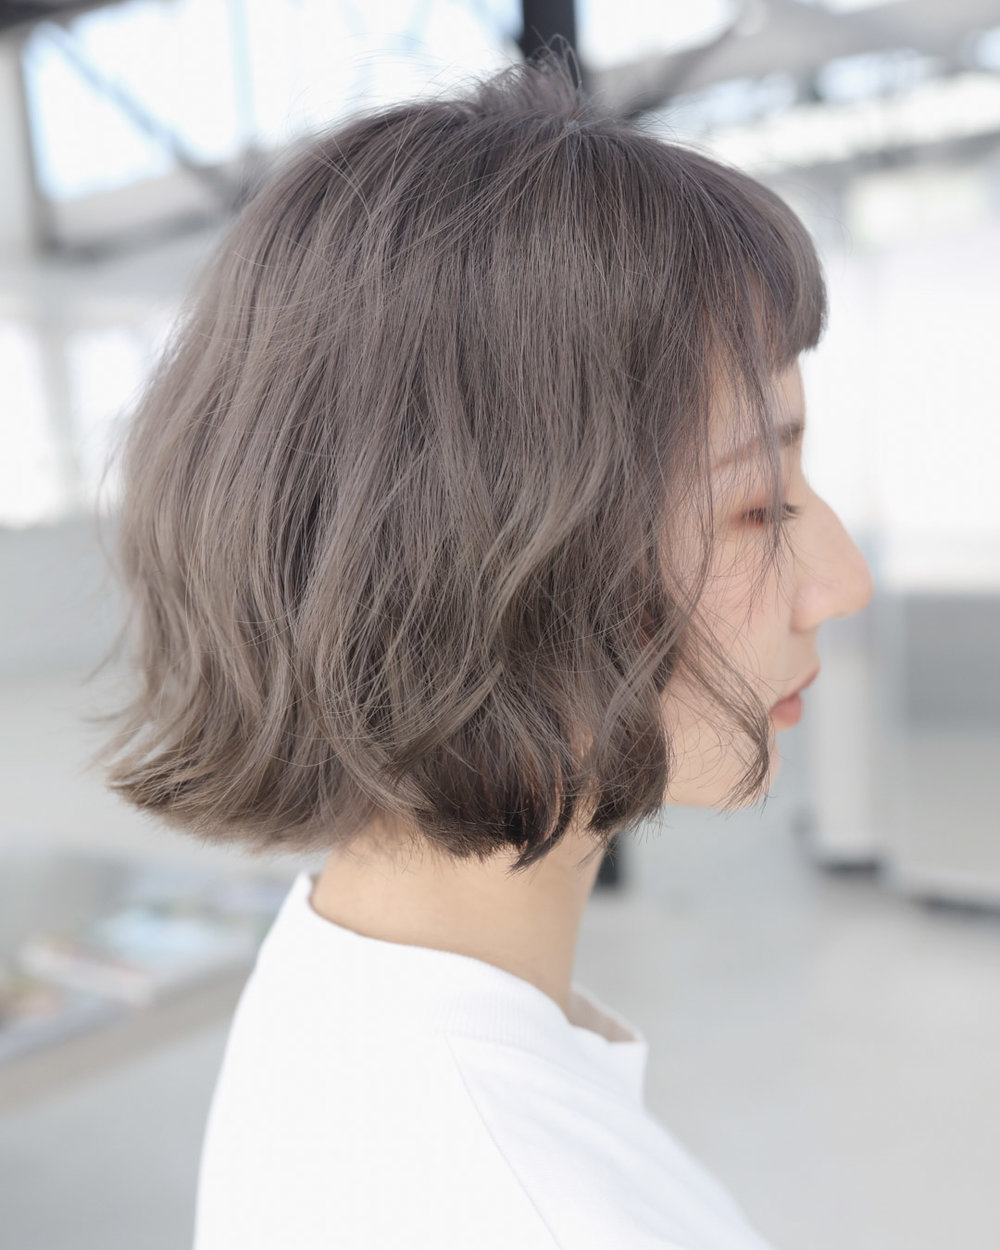 SILVER BEIGE - MENUWhole-head bleach, Second bleach, Colour, Cut and stylePRICEapprox. $520(Whole-head bleach medium $220, Second bleach $80, Colour medium $130, Cut and style from $90)TIMEapprox. 4 hours